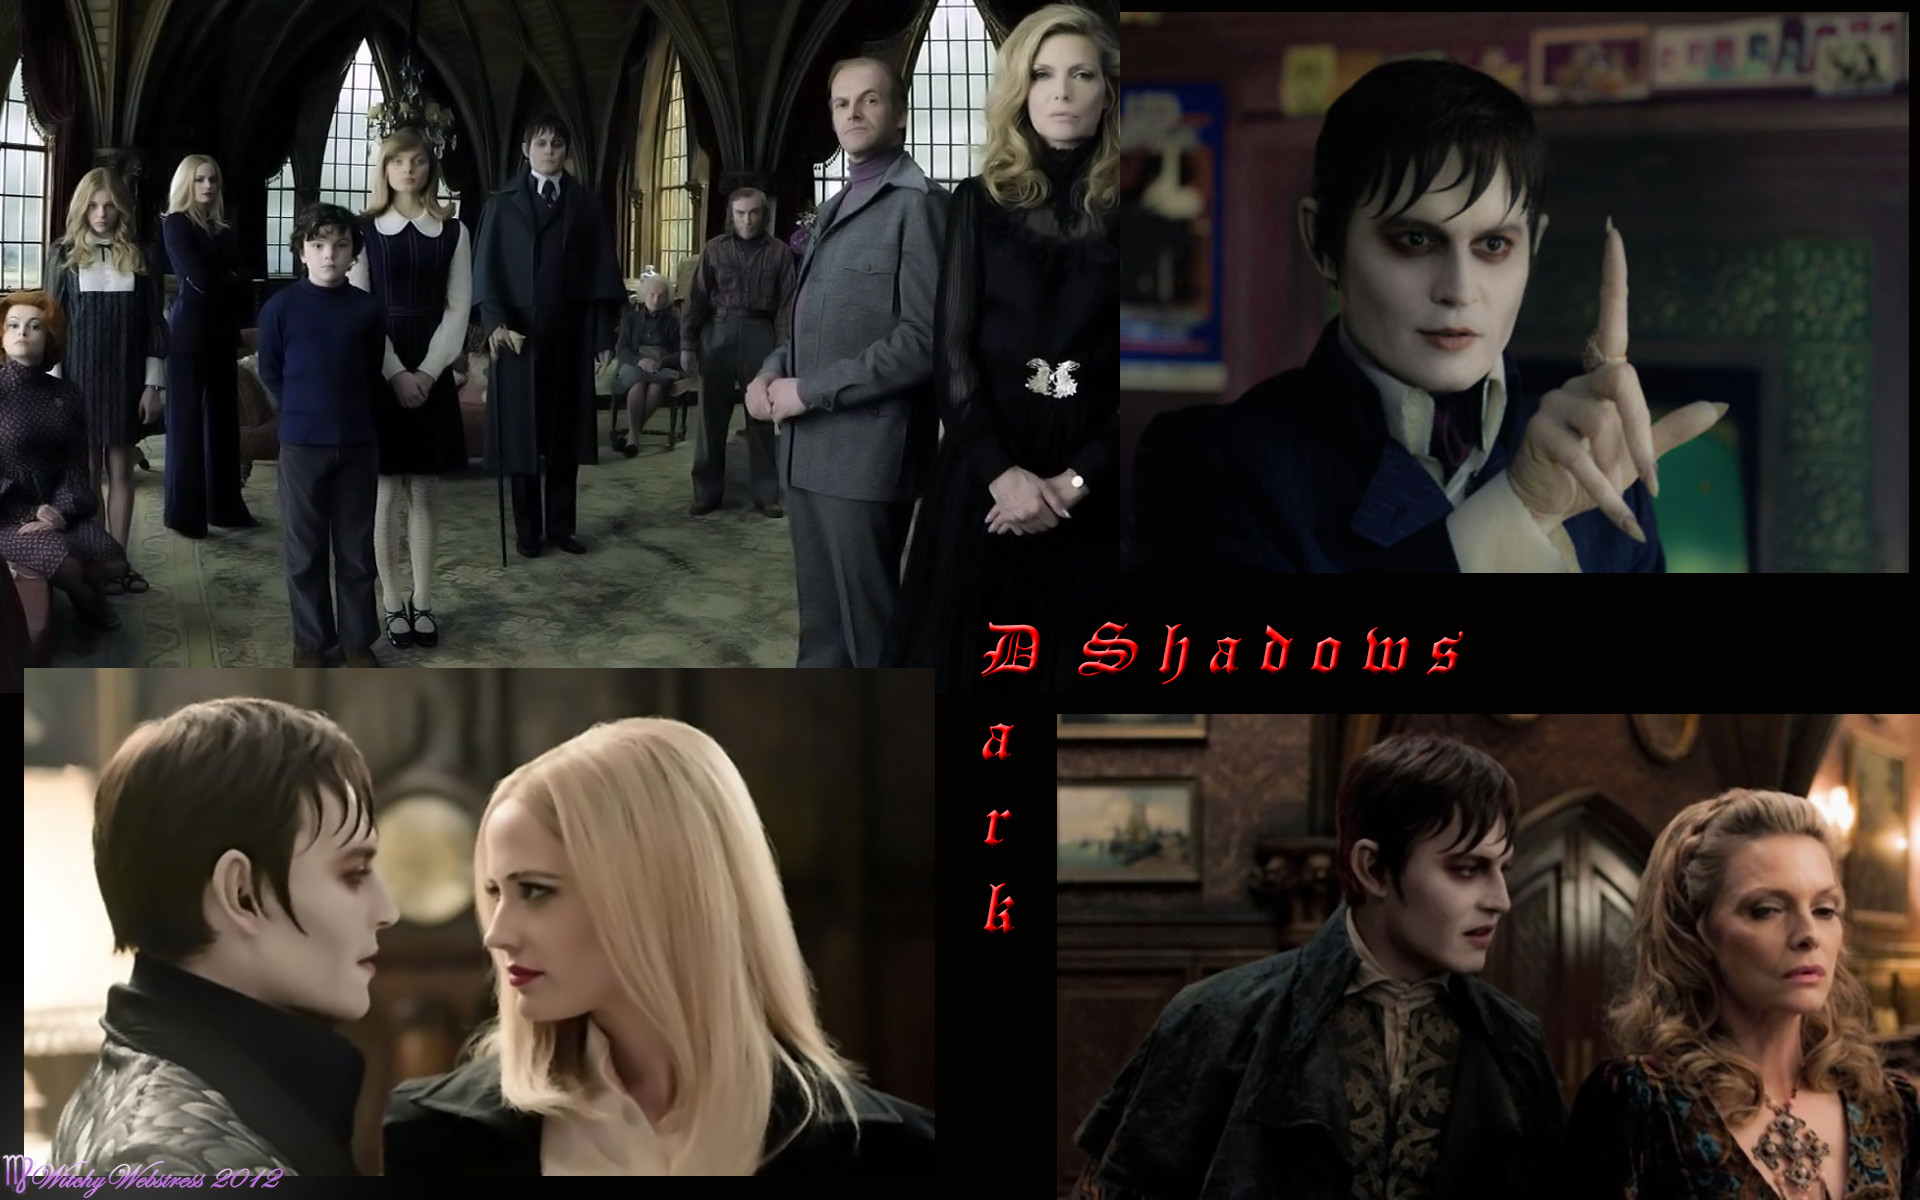 1920x1200 Tim Burton's Dark Shadows images Dark Shadows Teaser HD wallpaper and  background photos